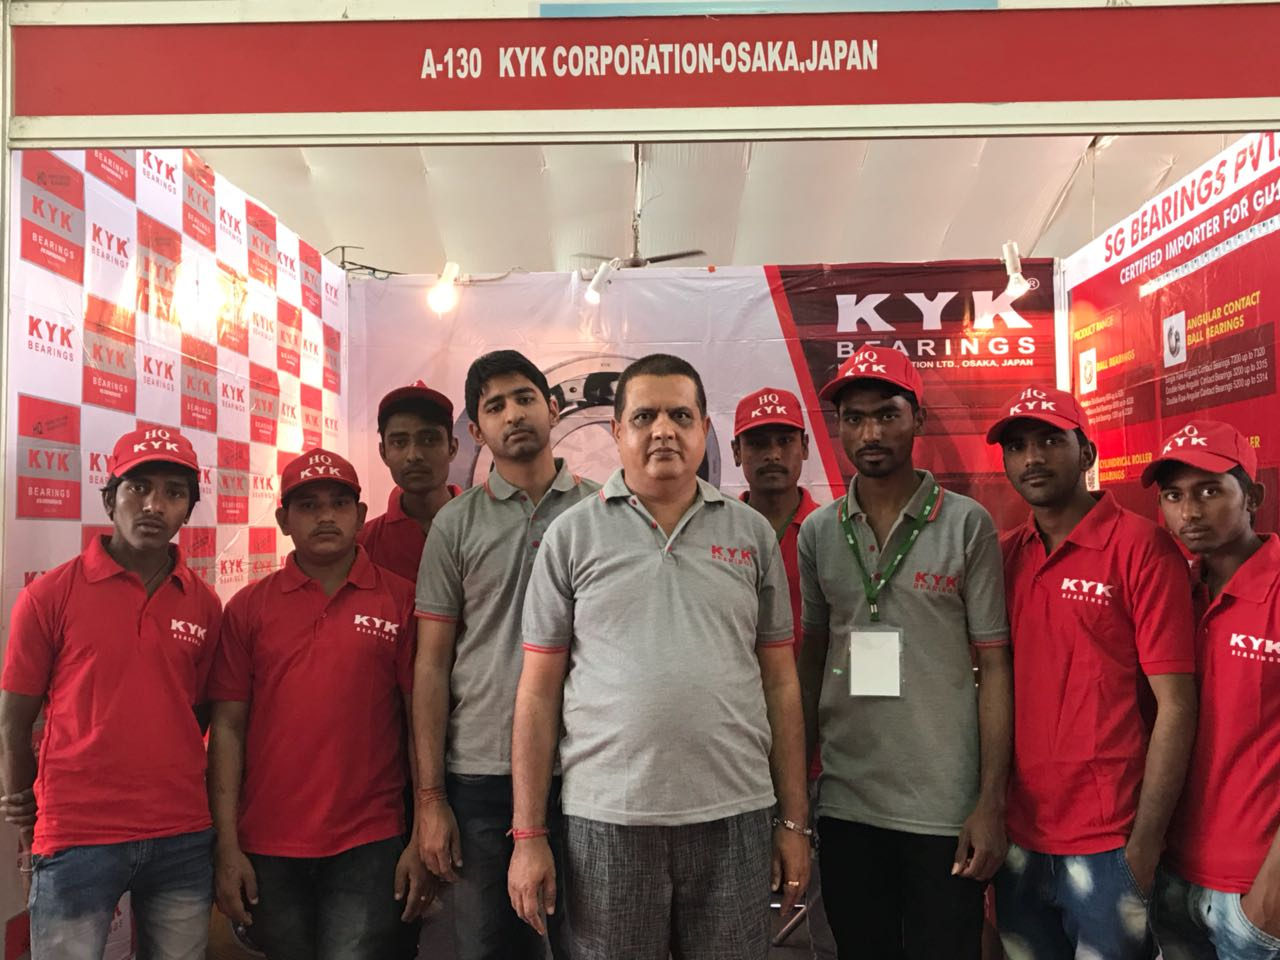 KYK Bearings at Engi Expo 2018